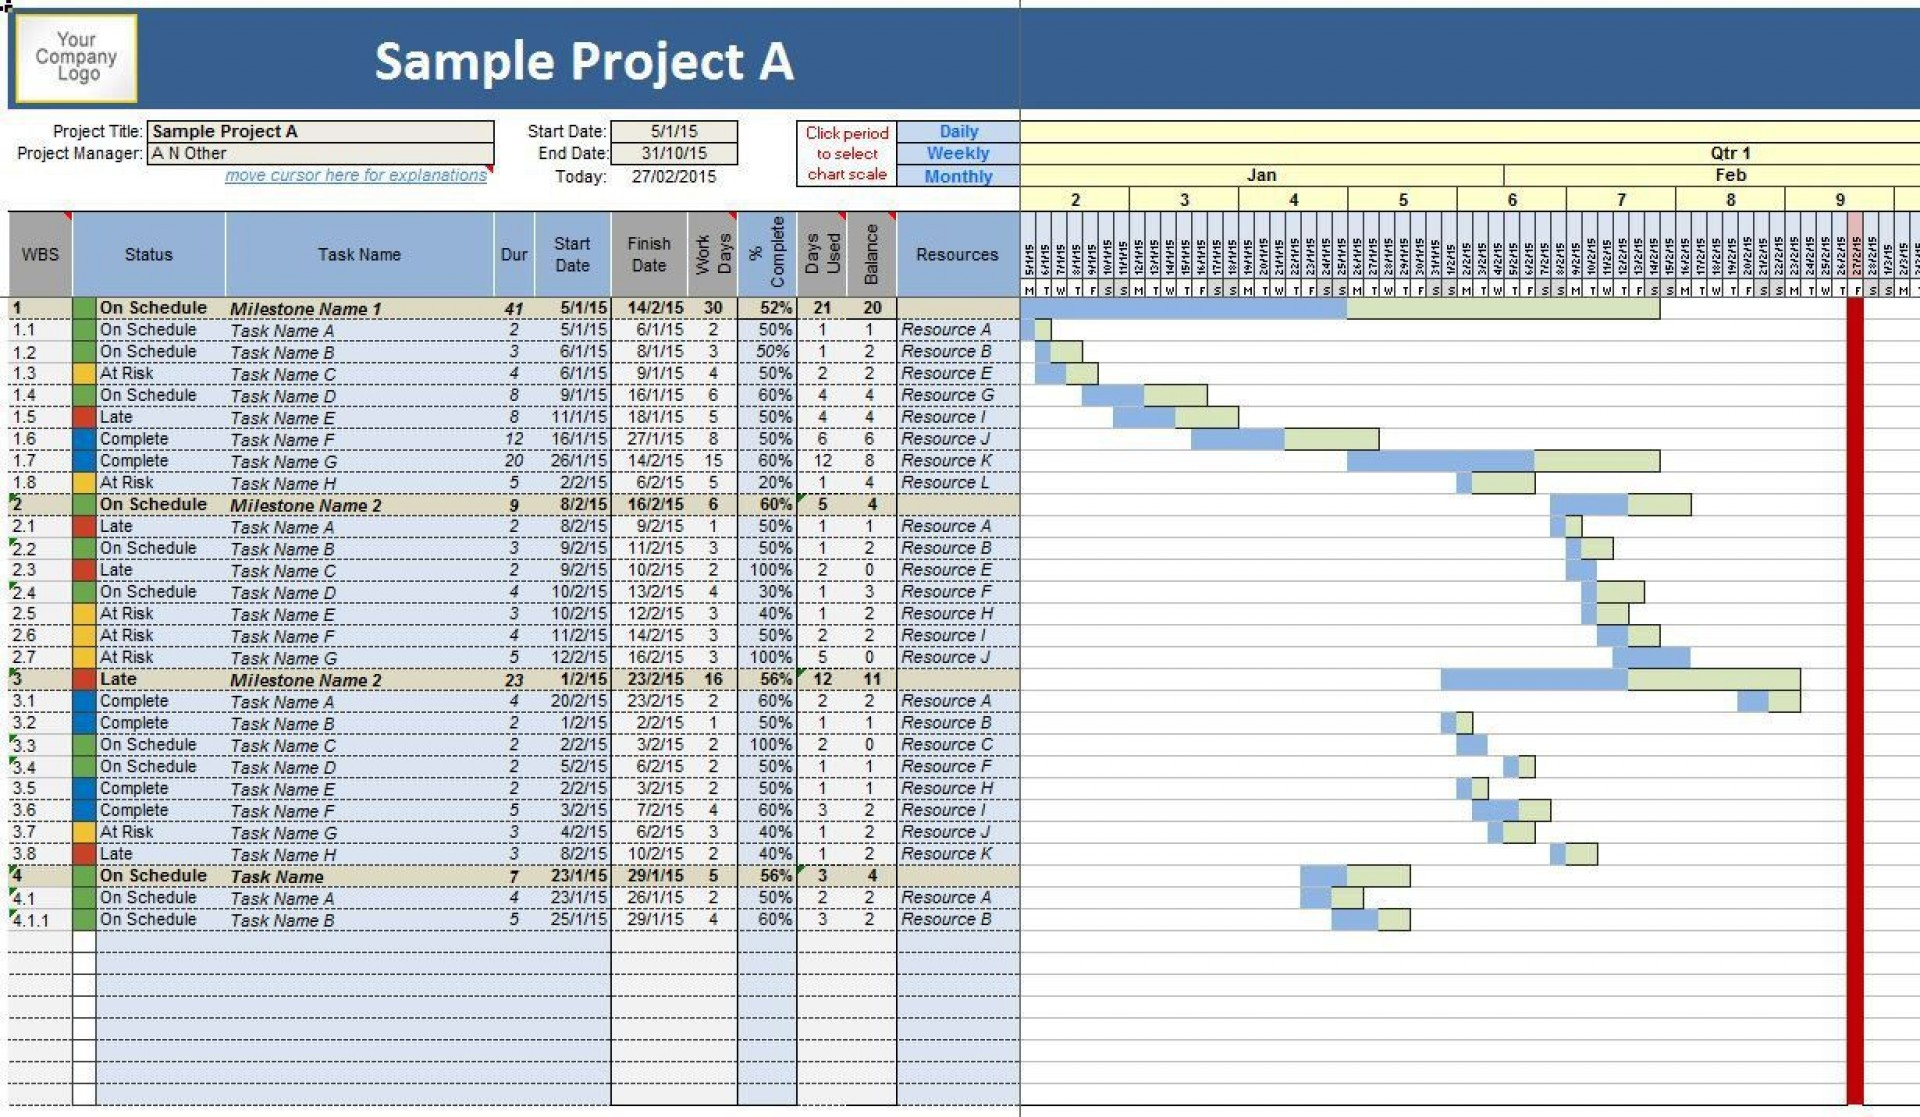 003 Astounding Project Plan Template Excel Free Inspiration  Action Download Xl Xlsx1920